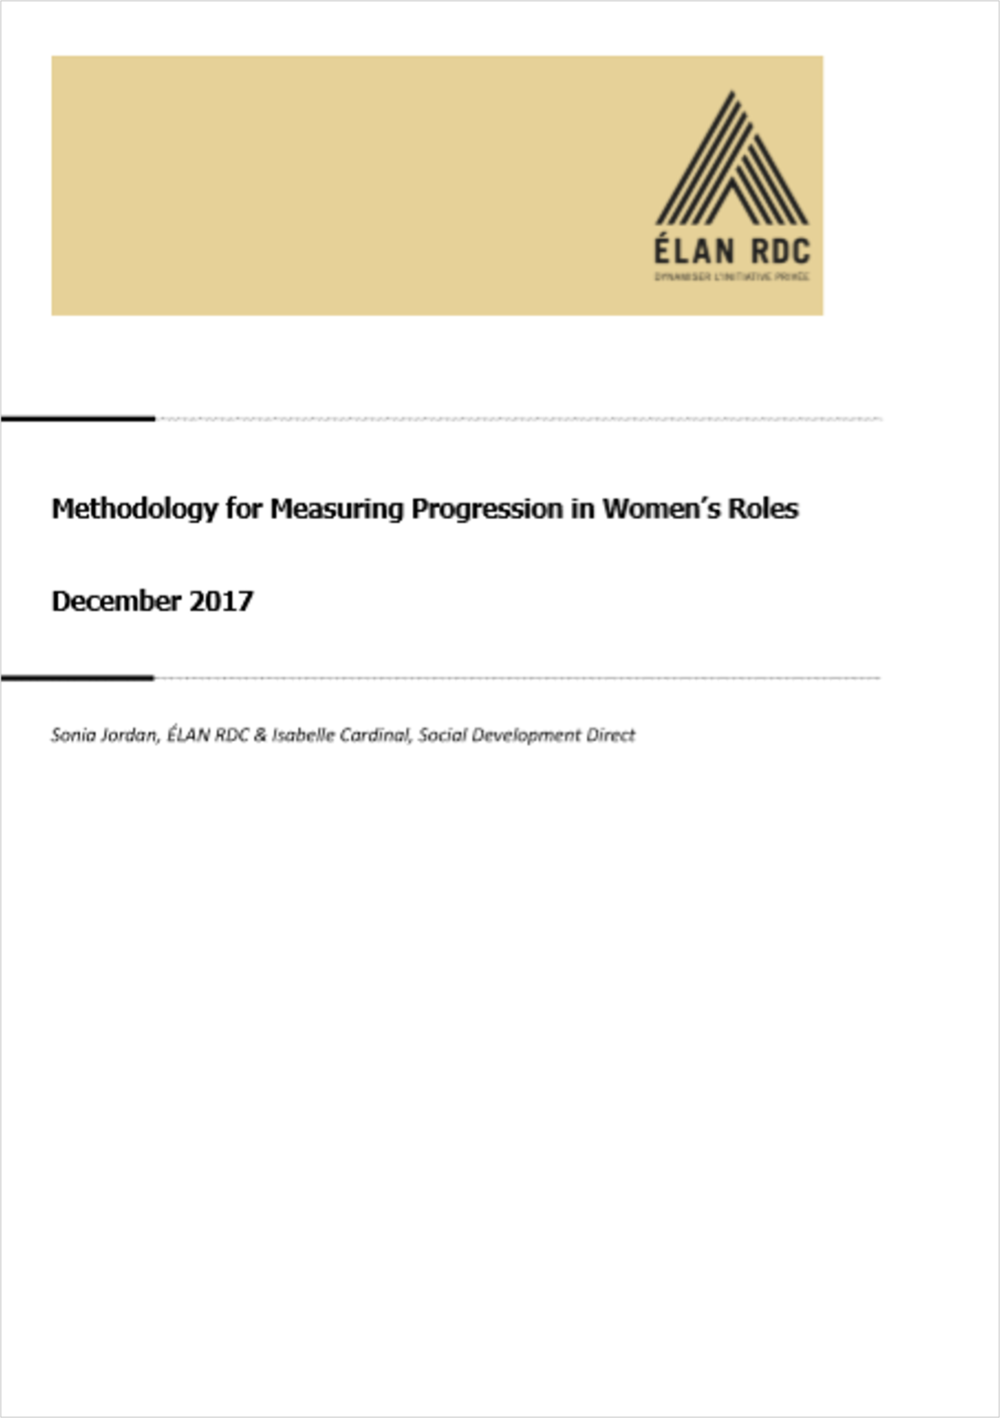 Women's Role Change - Measurement Methodology